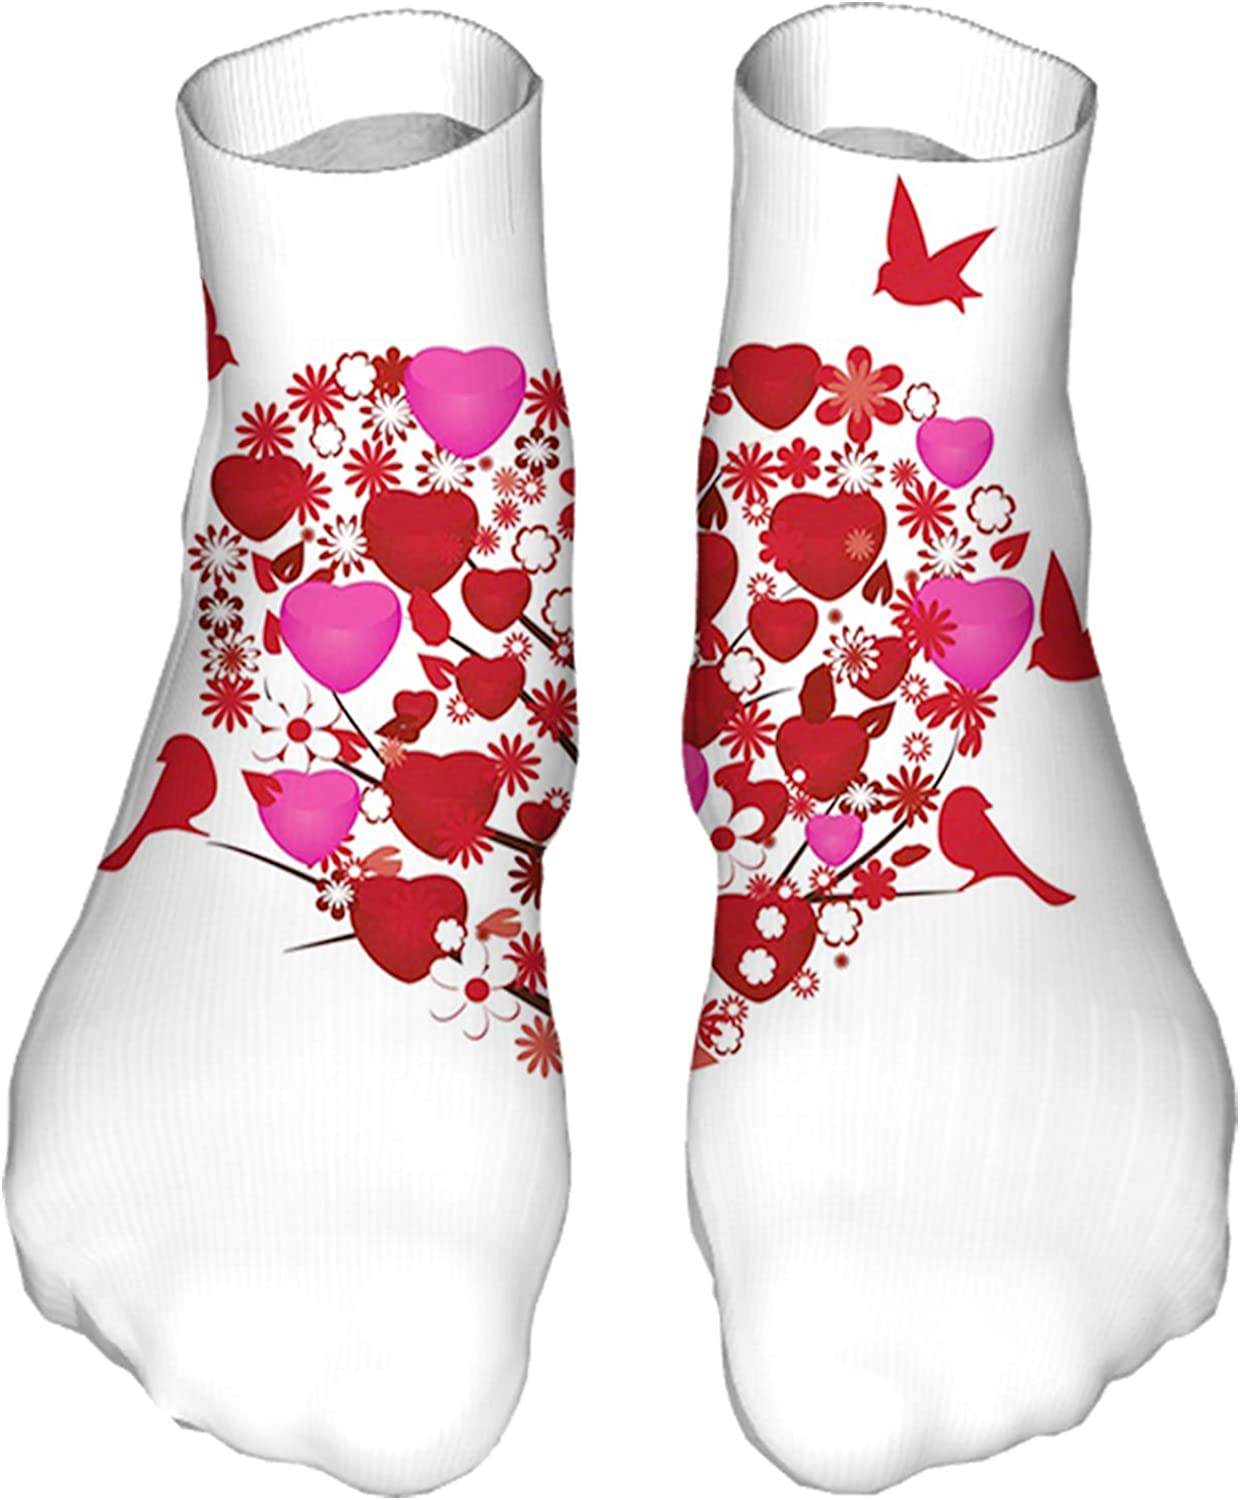 Women's Colorful Patterned Unisex Low Cut/No Show Socks,Image of Abstract Love Tree with Hearts Flowers and Birds